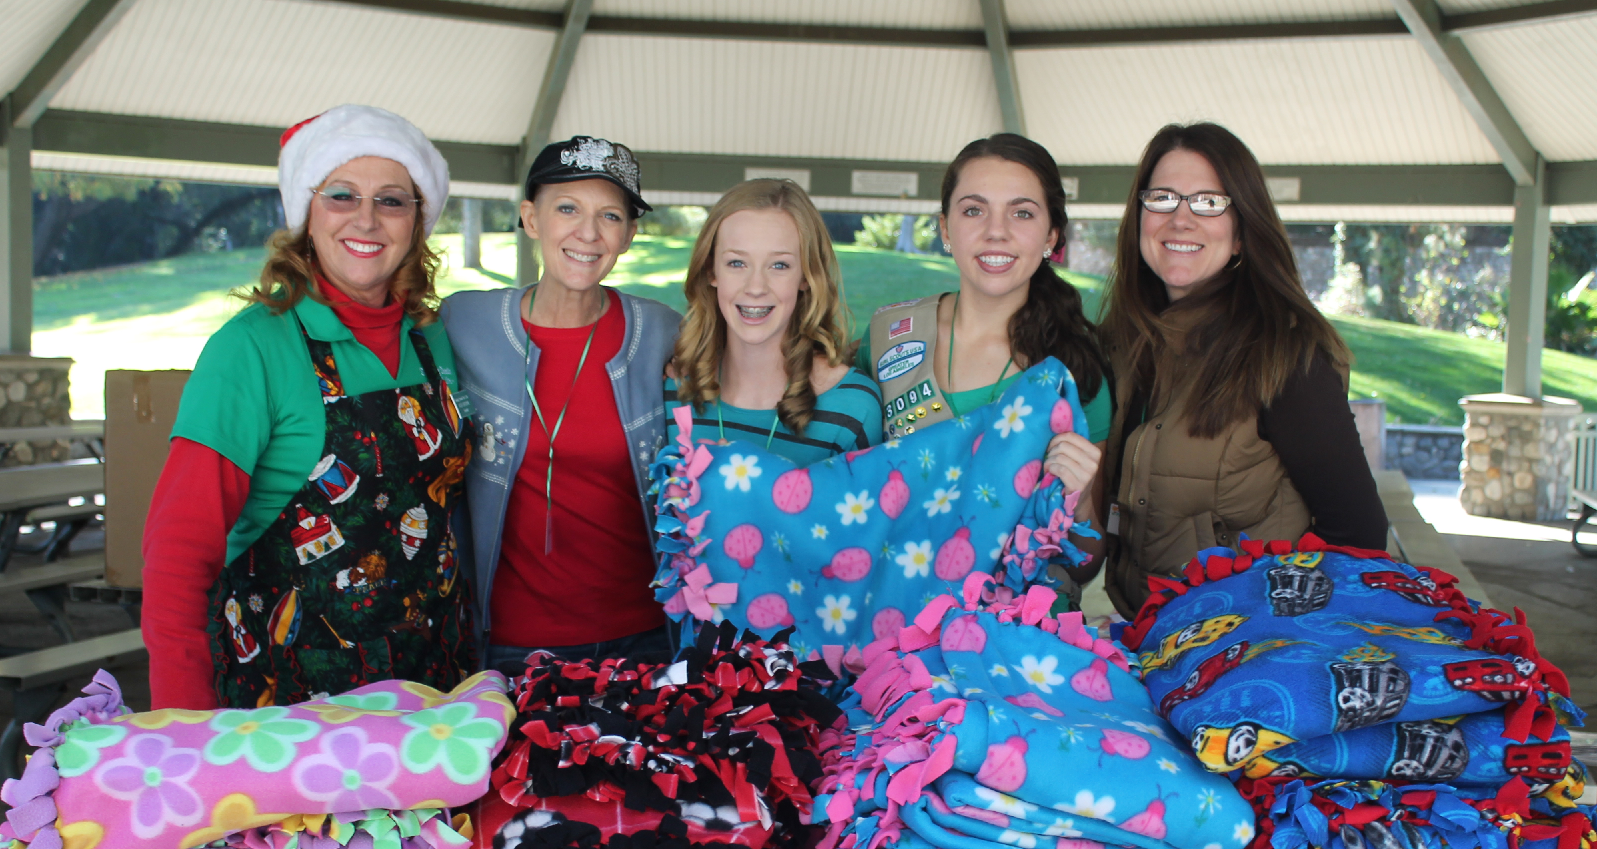 Vicki Brown with Sandy Boulware, Michelle Boulware, Danae Hollar and Lori Hollar. Danae made 30 tie blankets to hand out as part of a Girl Scout project.